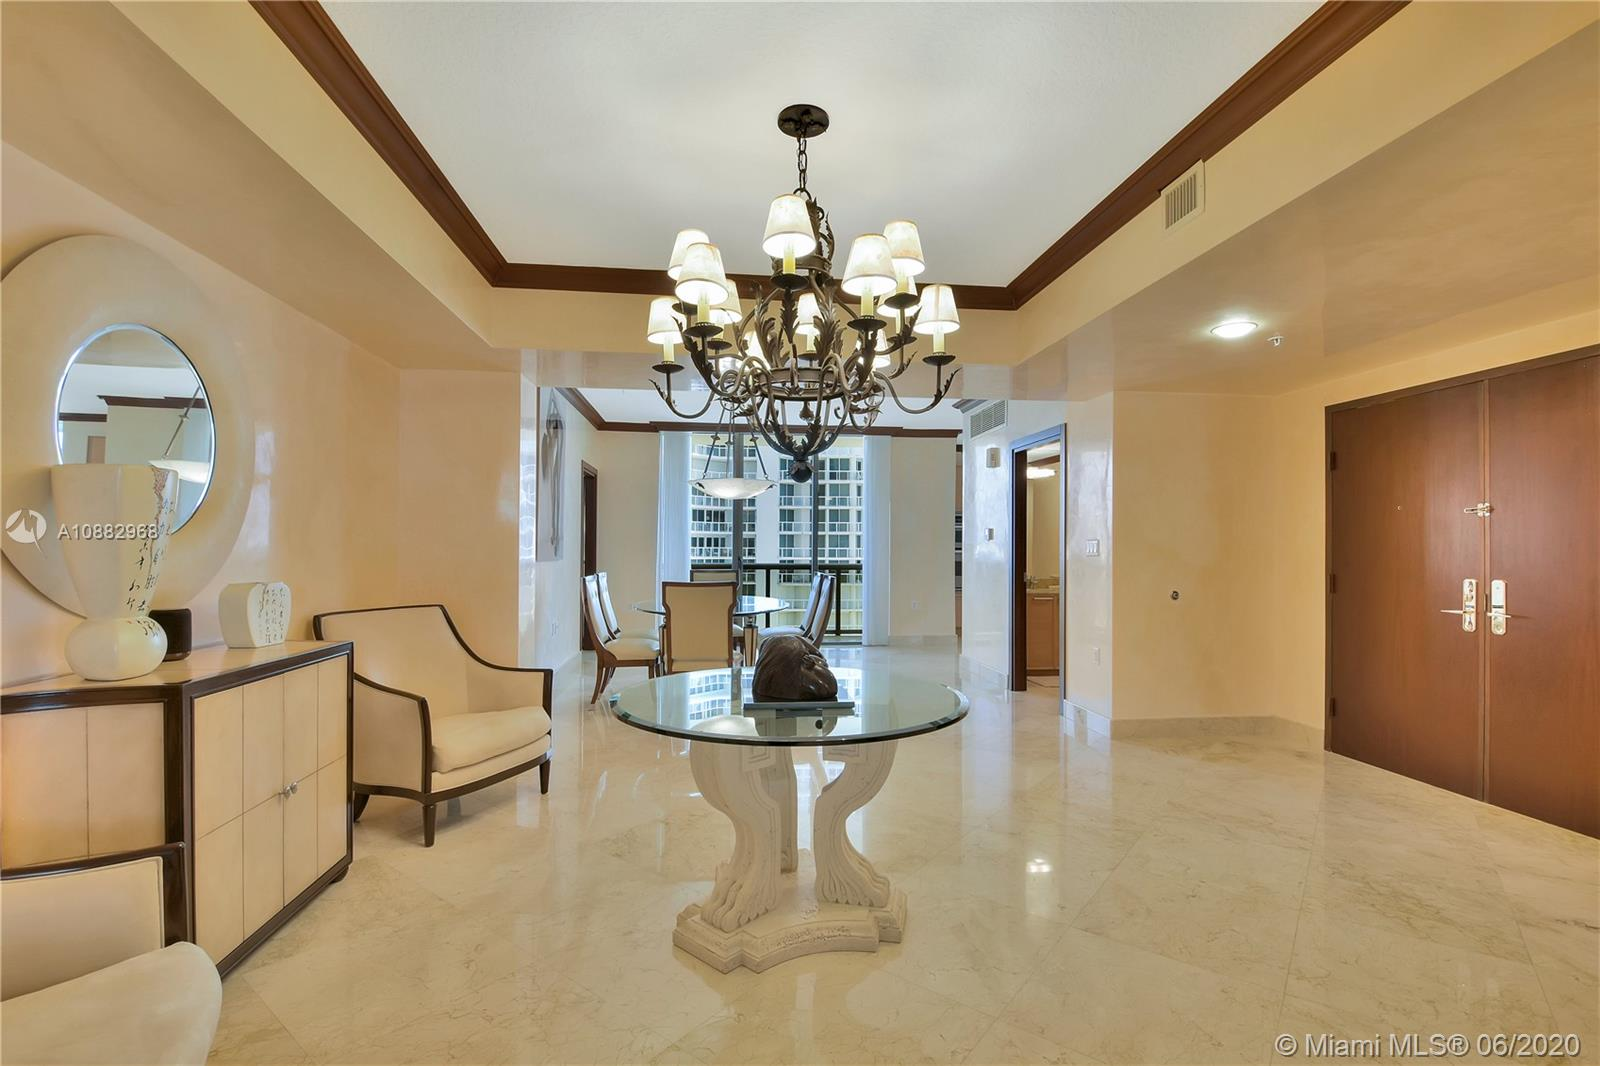 Gorgeously finished and decorated large 2 bedroom 2.5 bath oceanfront condo with a private elevator. Unit is second from the ocean, flows through north/south with balcony on each side. Sold fully furnished, just bring your toothbrush and enjoy this spectacular residence and views! Boutique luxury building with only 92 residences with 24/7 front desk security and valet parking. Sauna and steam room, gym with state of the art equipment. Private beach and jacuzzi. Unit is rented tenant has 60 days kick-out clause.